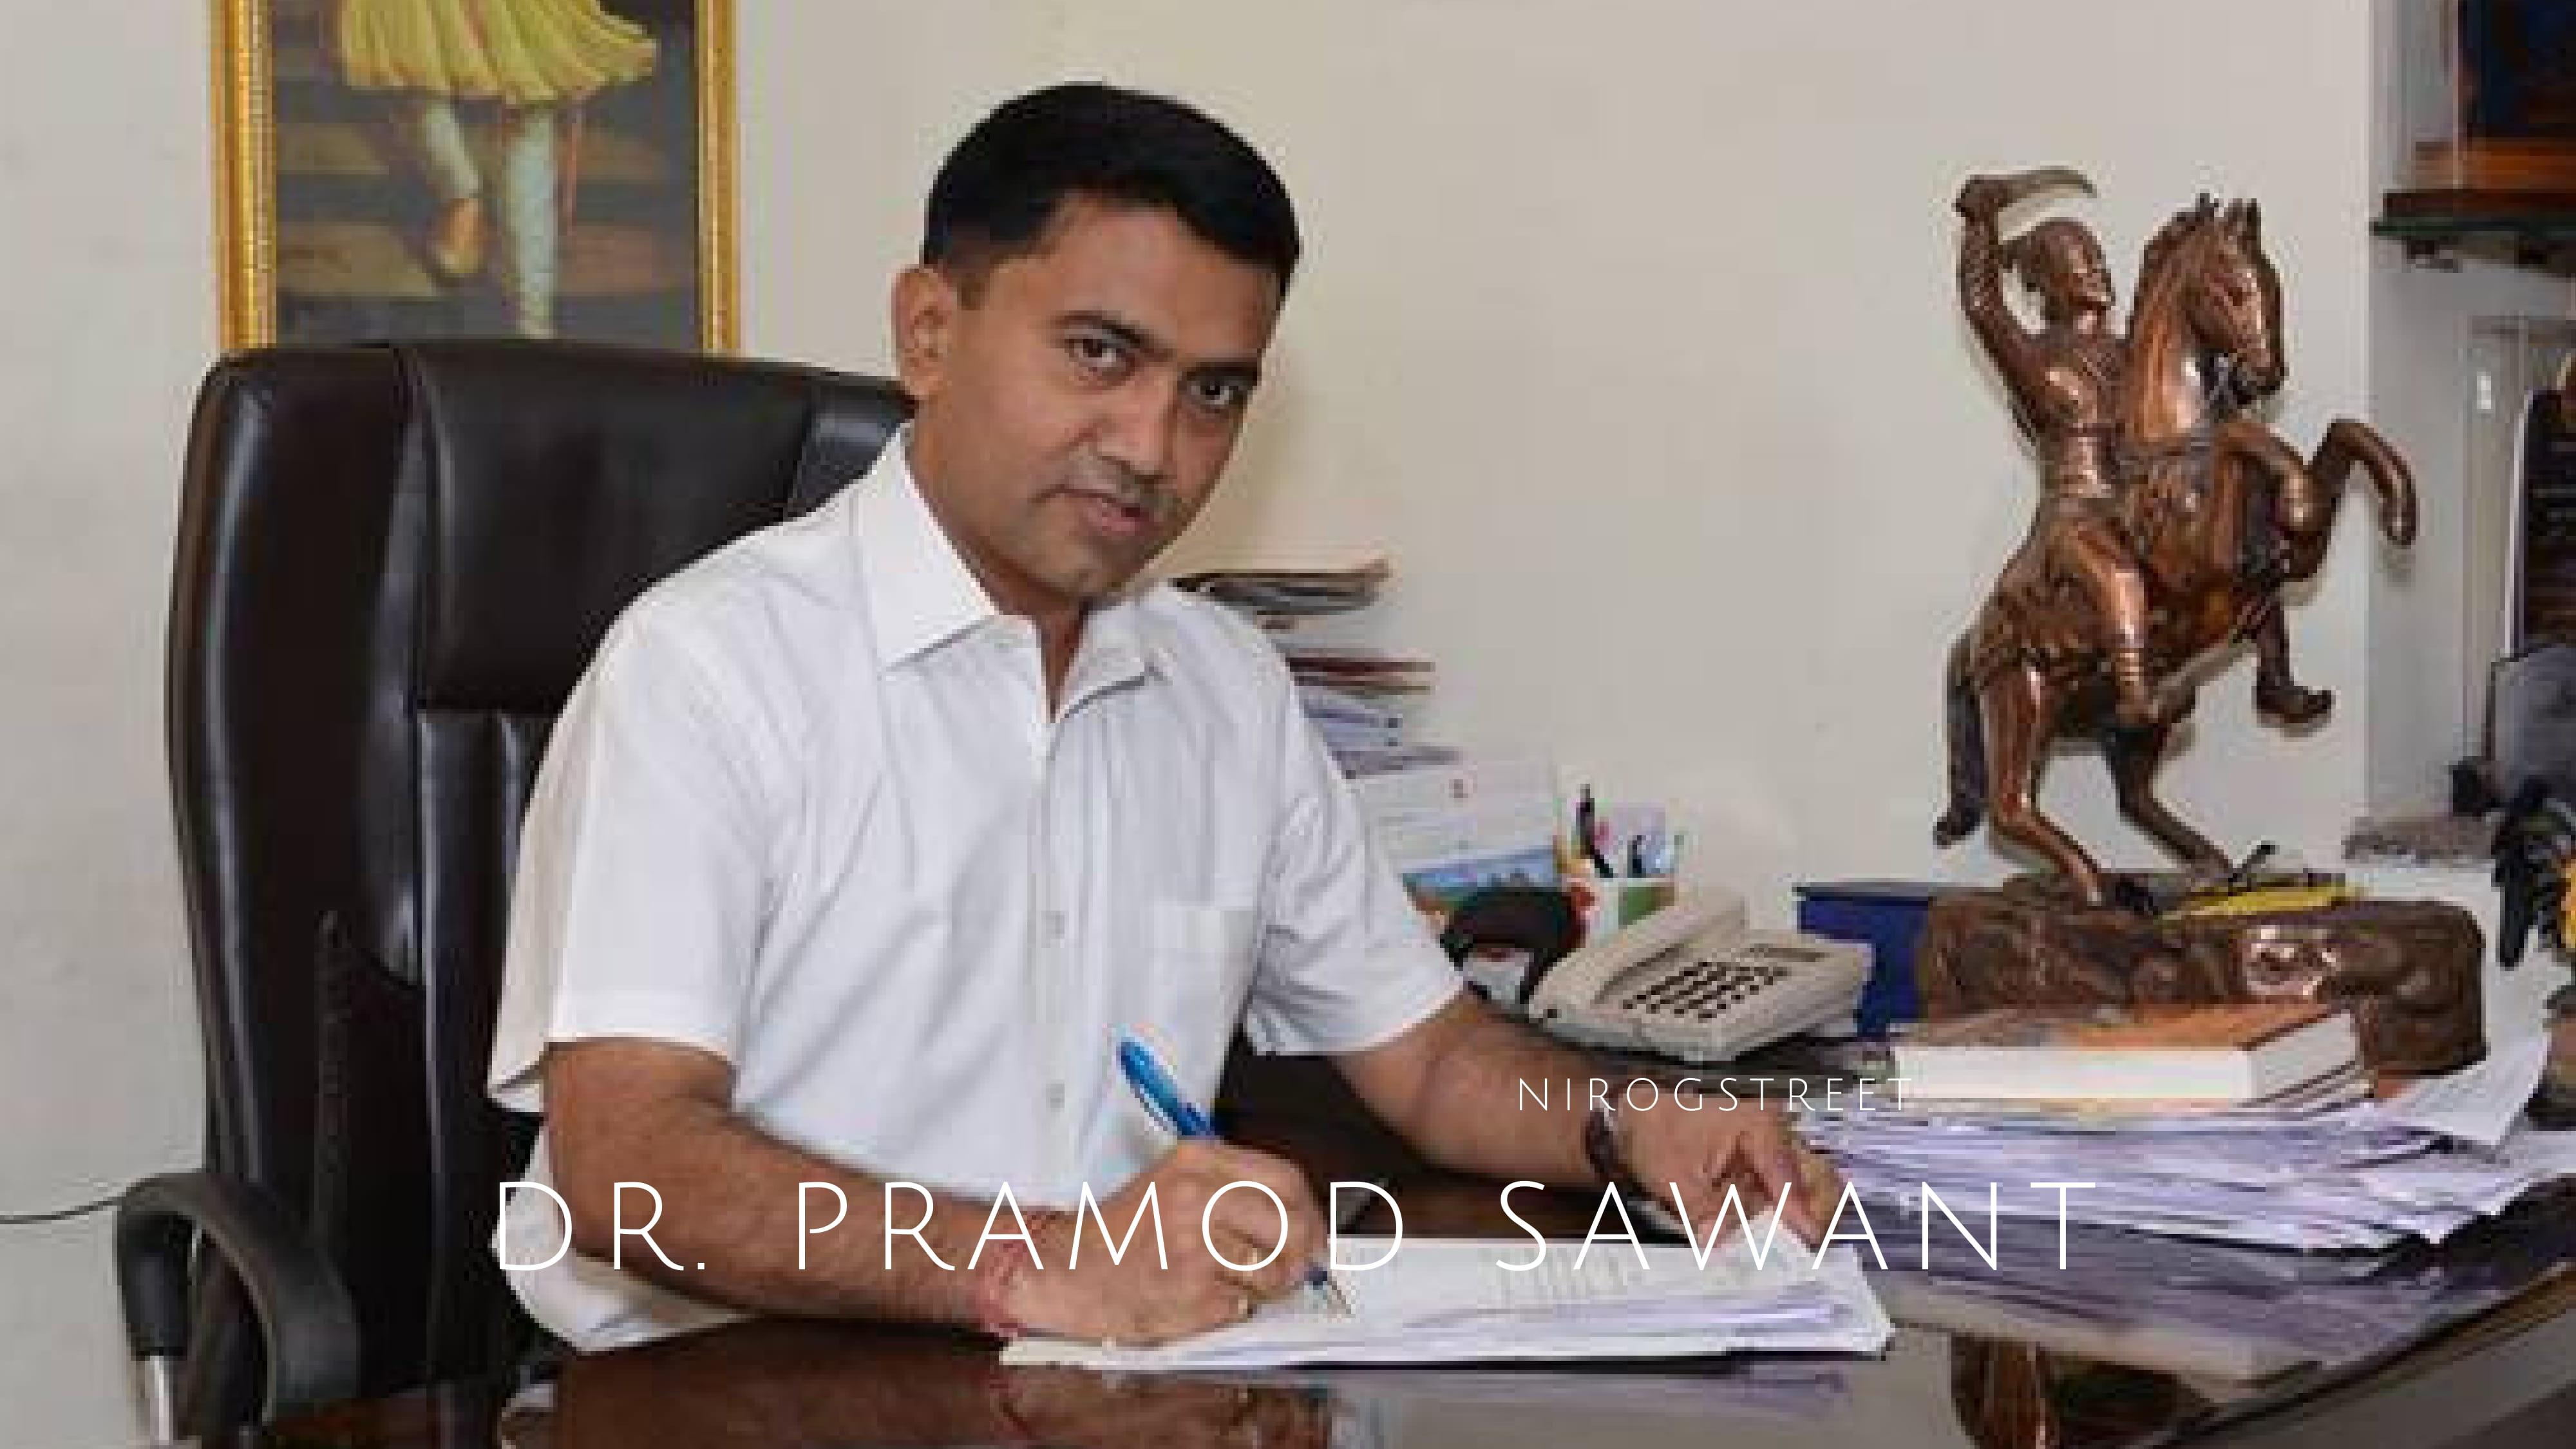 Dr. Pramod Sawant's journey from Ayurvedic doctor to Goa Chief Minister